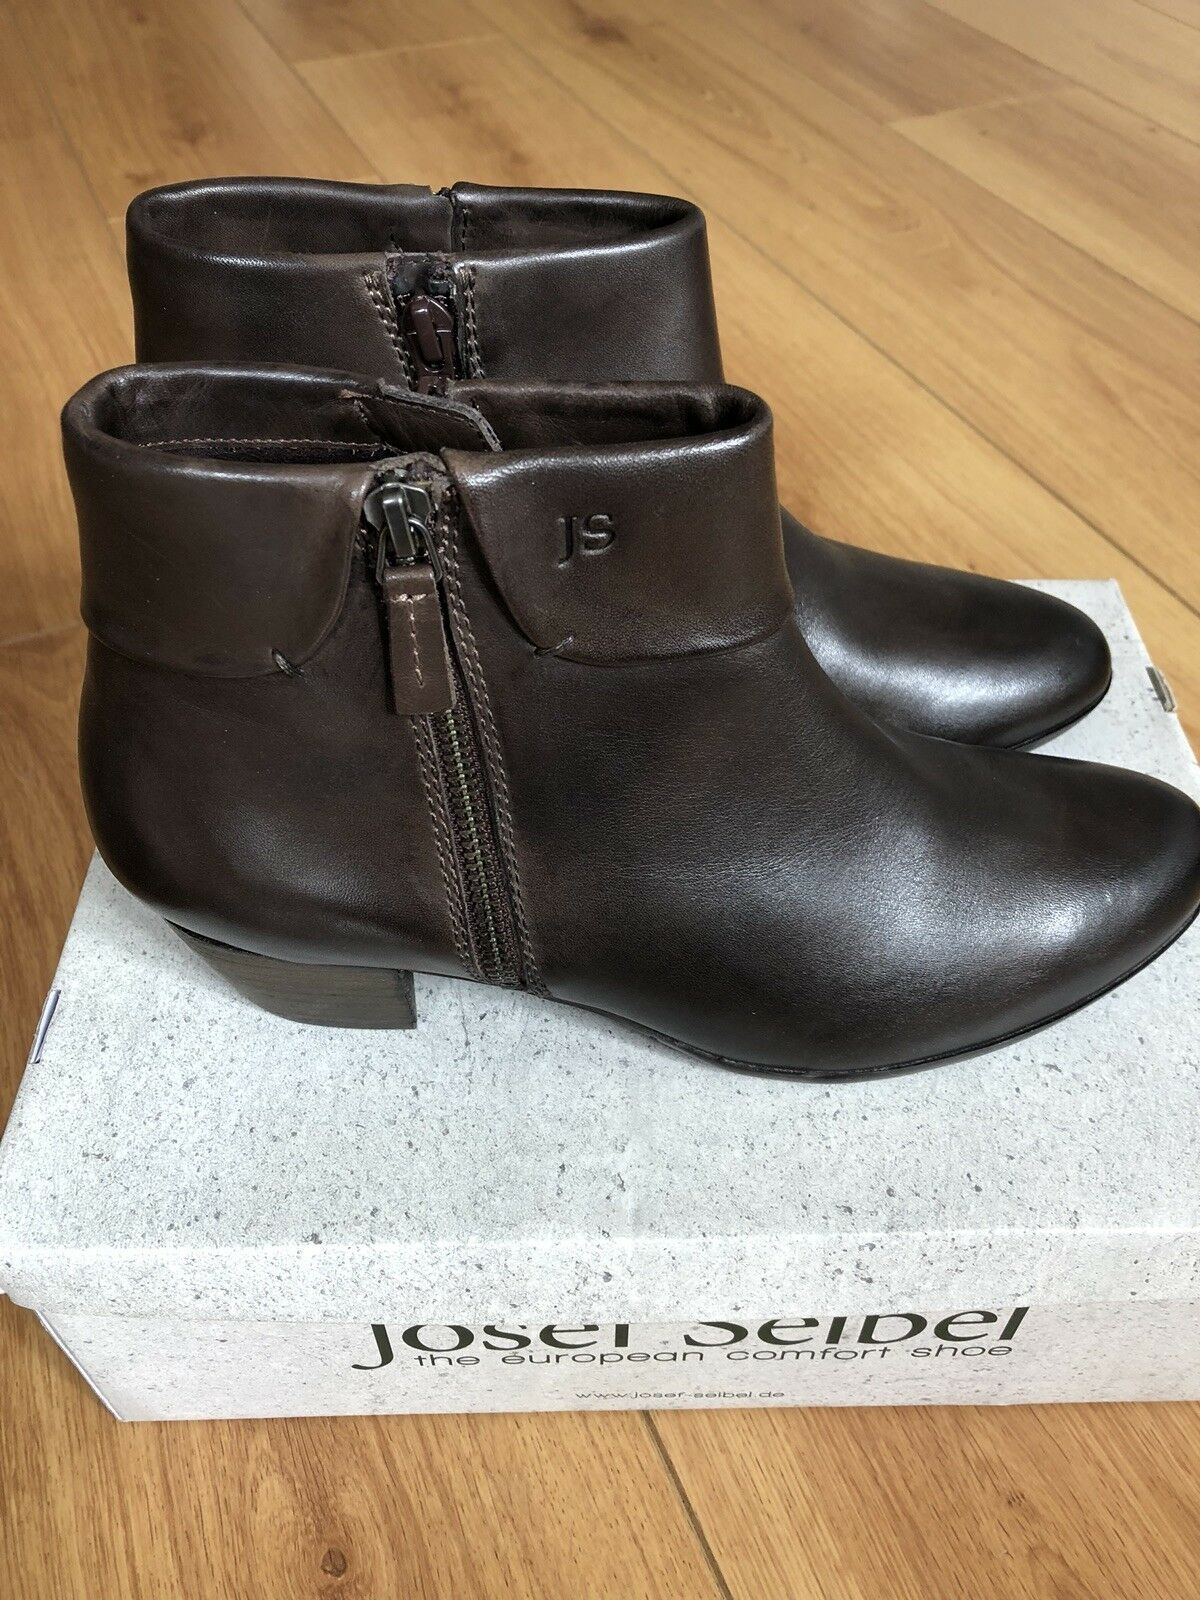 BRAND NEW JOSEF 05 SEIBEL SUE 05 JOSEF ladies ankle Stiefel in chocolate Braun UK 7.5/41 3aecf8